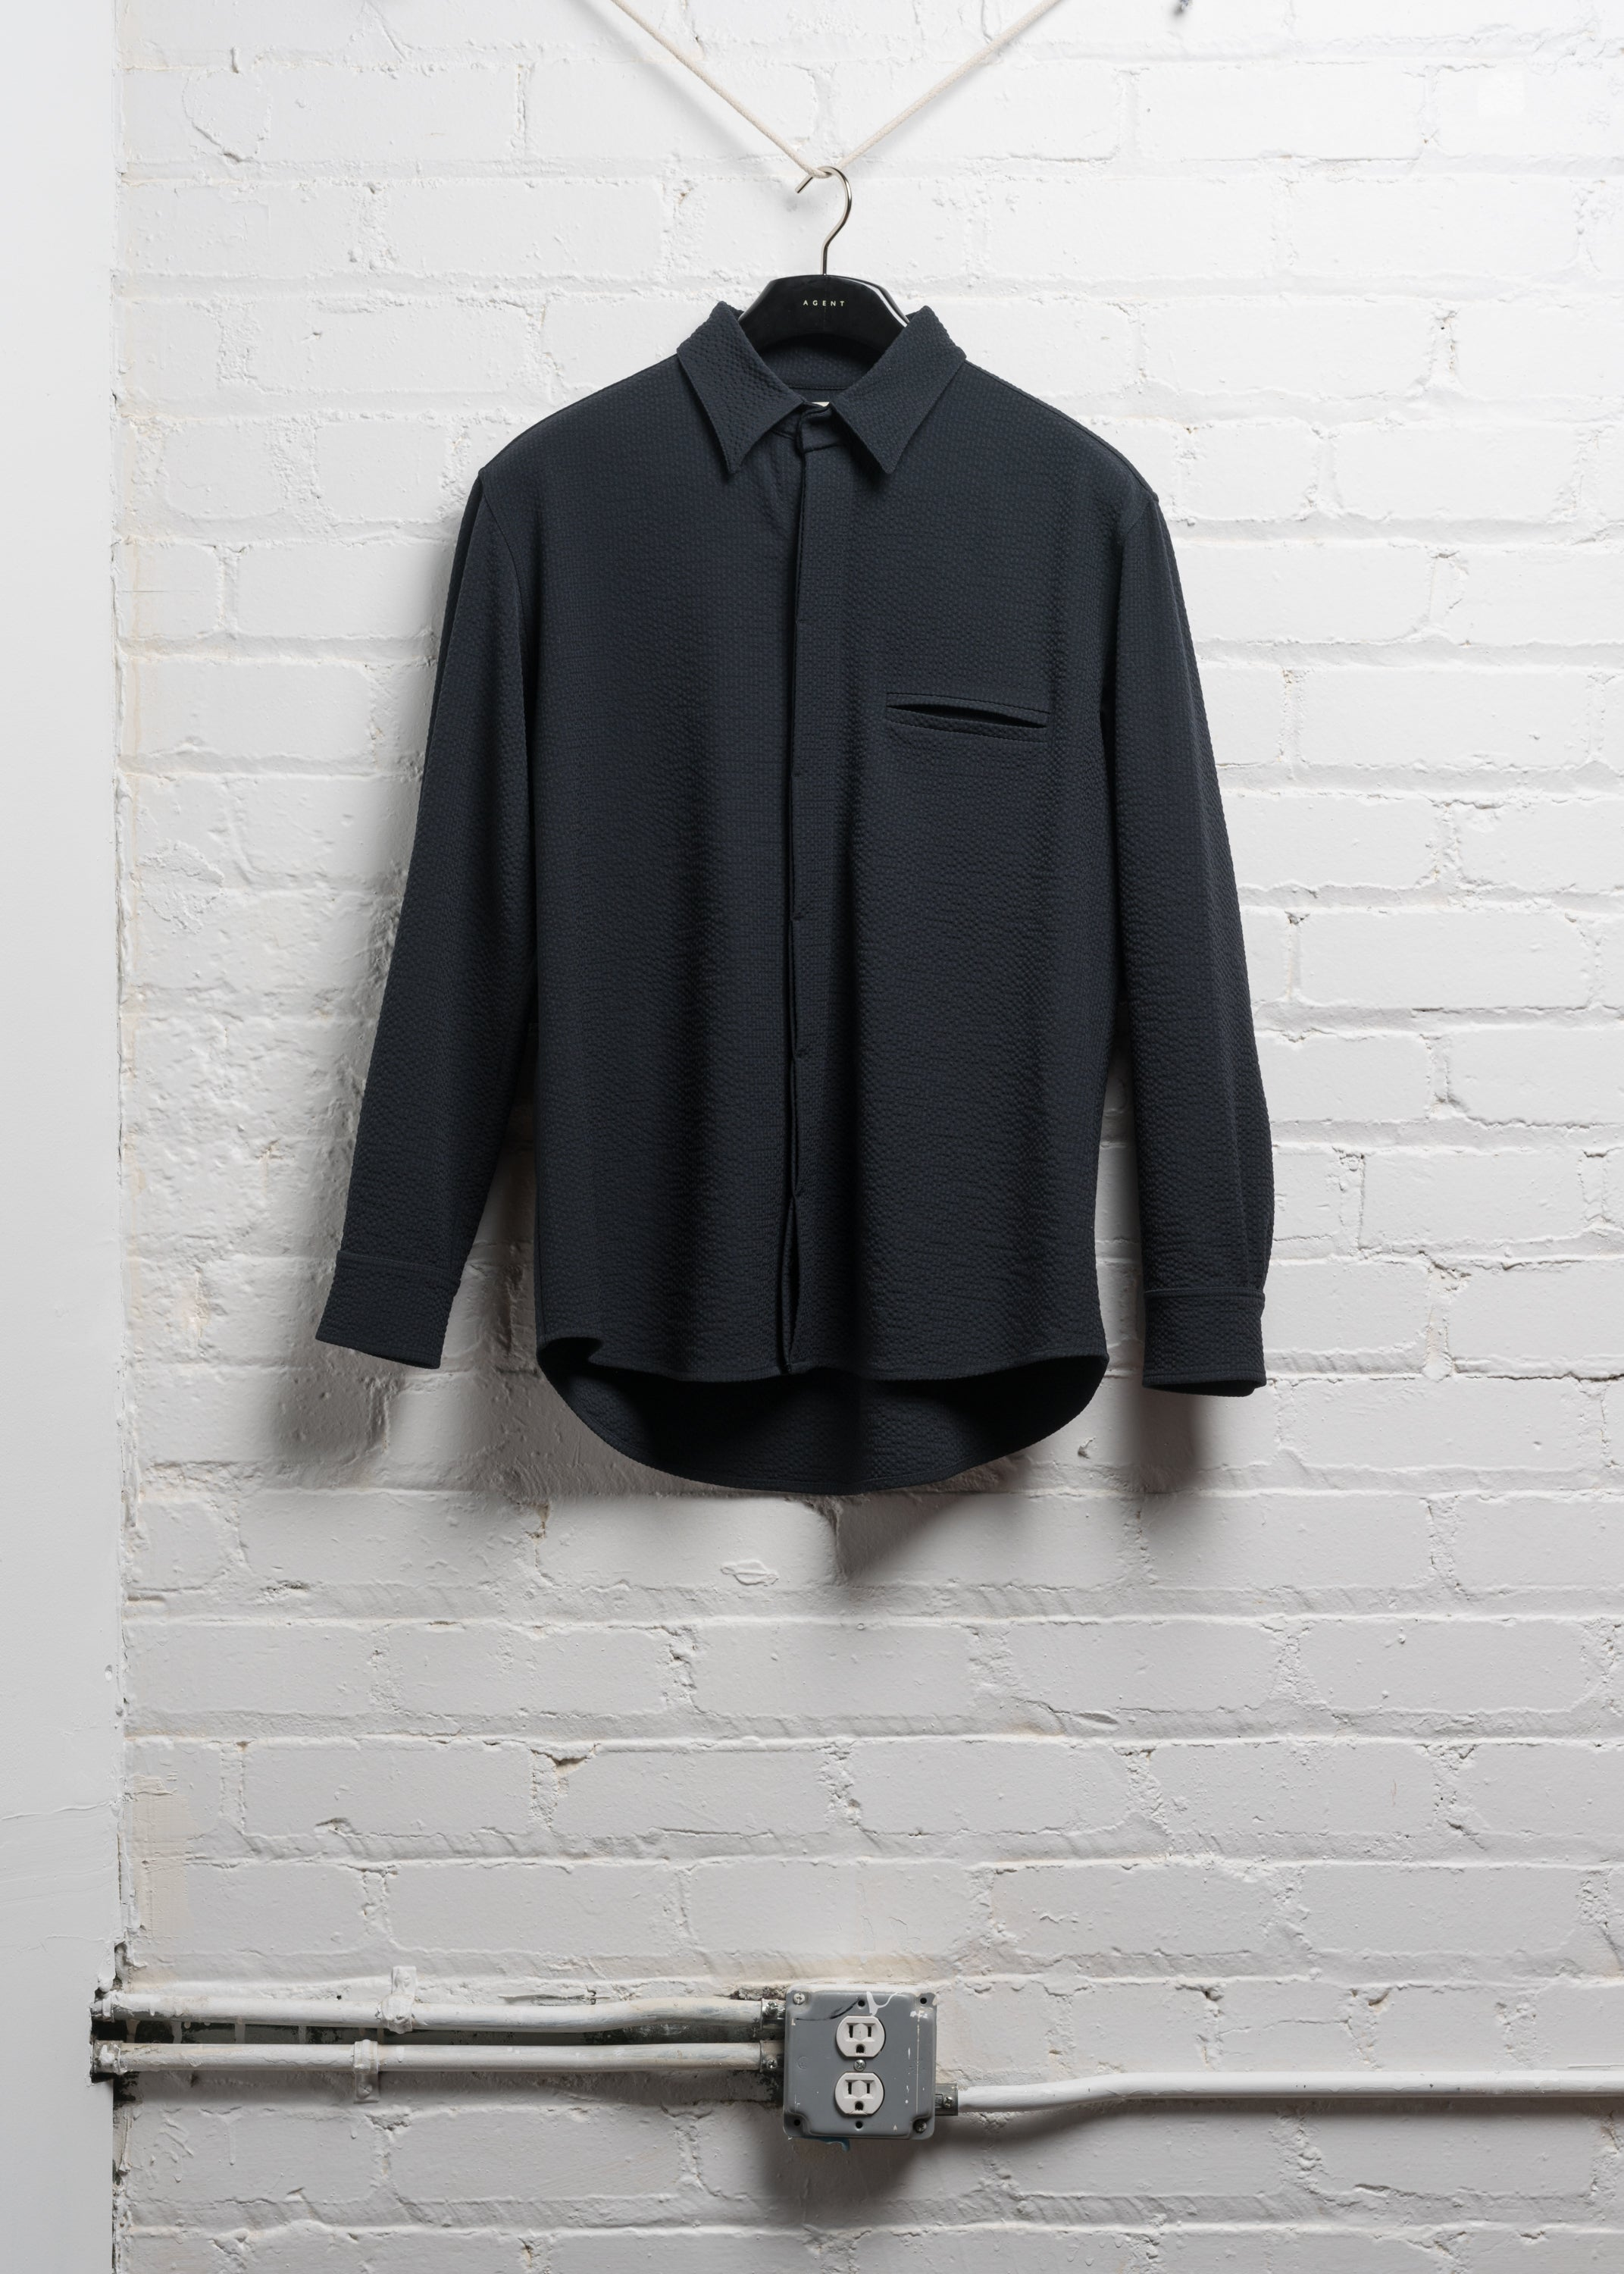 BOX SHIRT IN NAVY WOOL